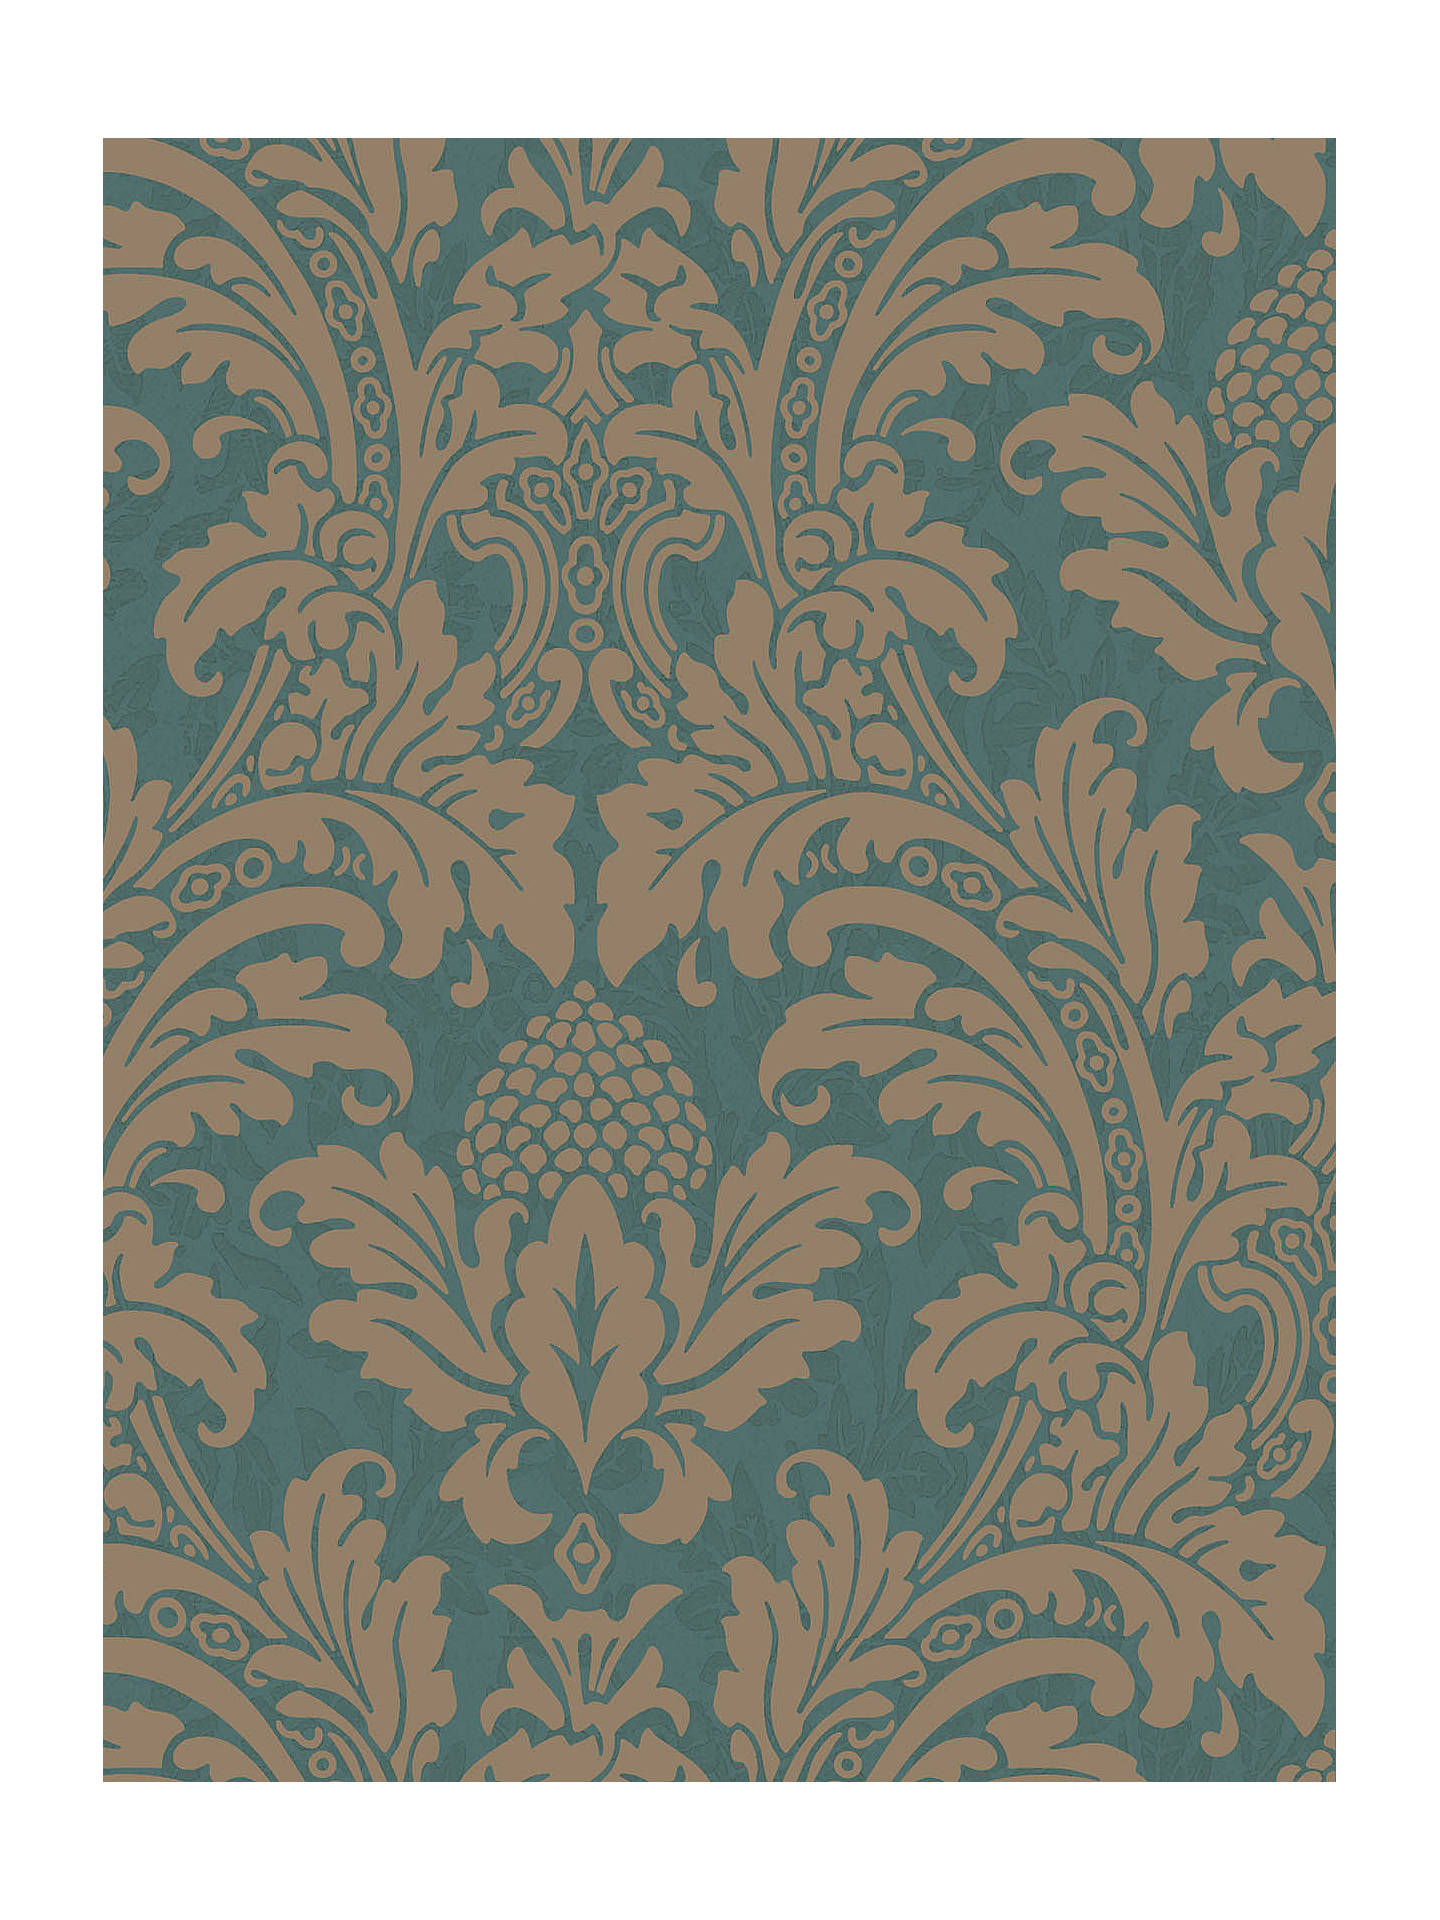 Buy Cole & Son Blake Wallpaper 94/6031 Online at johnlewis.com